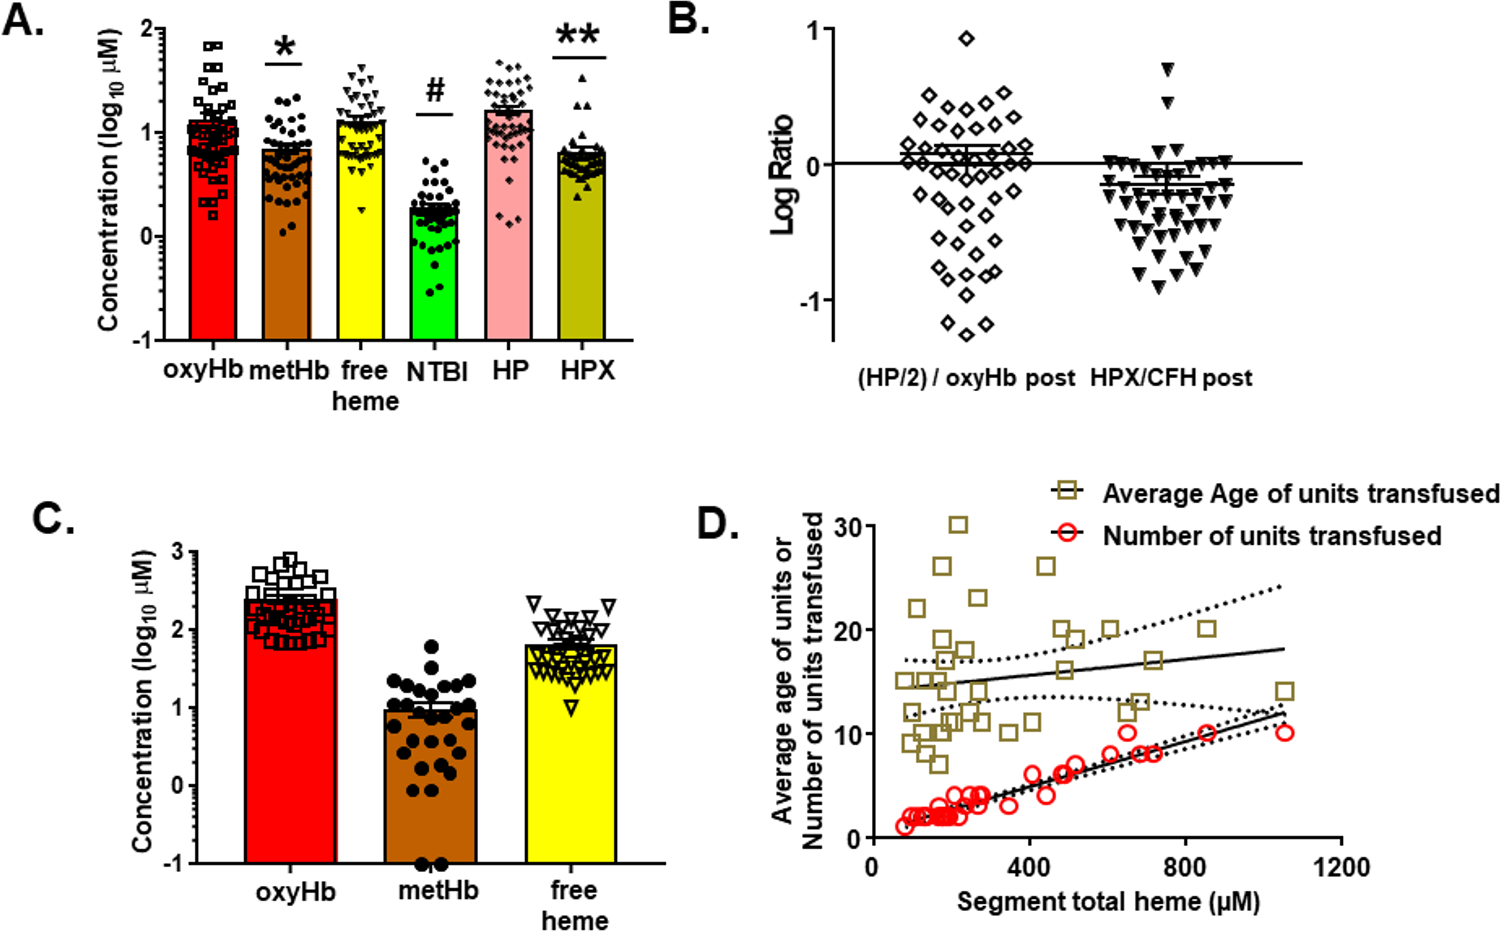 Measurement of hemolysis products and heme-sequestering proteins in transfused units and plasma in trauma hemorrhage (TH) patients.